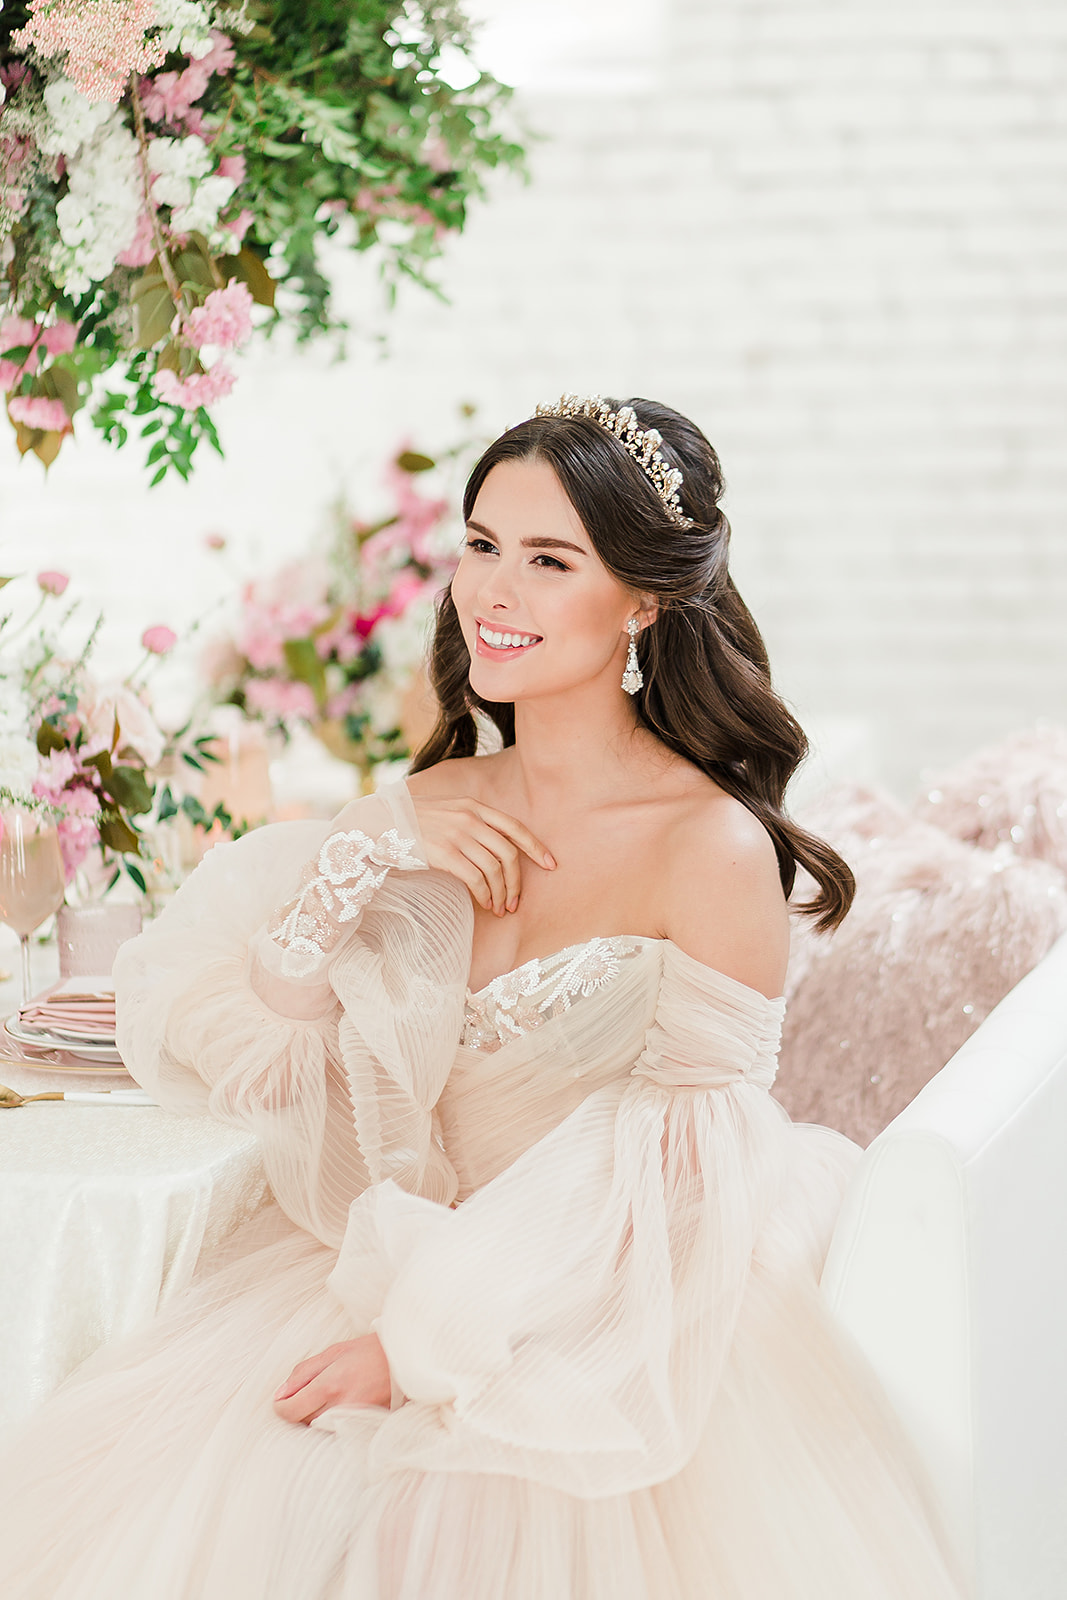 seattle bride, seattle bride magazine, styled shoot, bridal style, wedding gown, wedding inspiration, styled shoot wedding